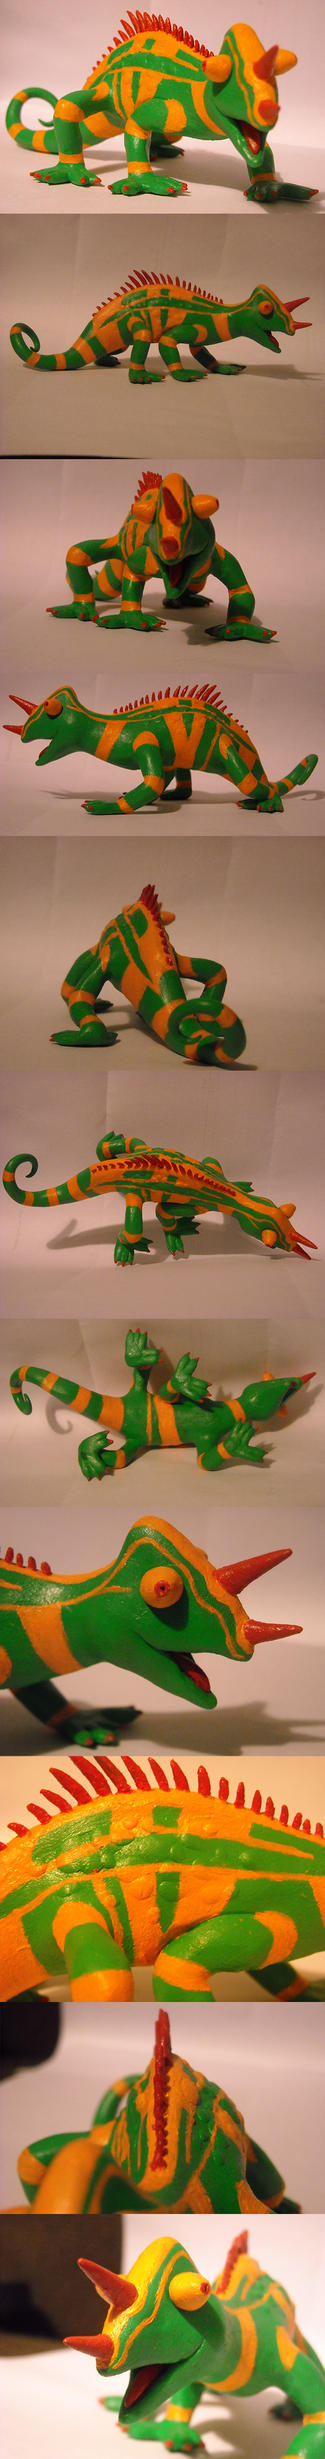 Nwaba the chameleon sculpture by Iron-Zing